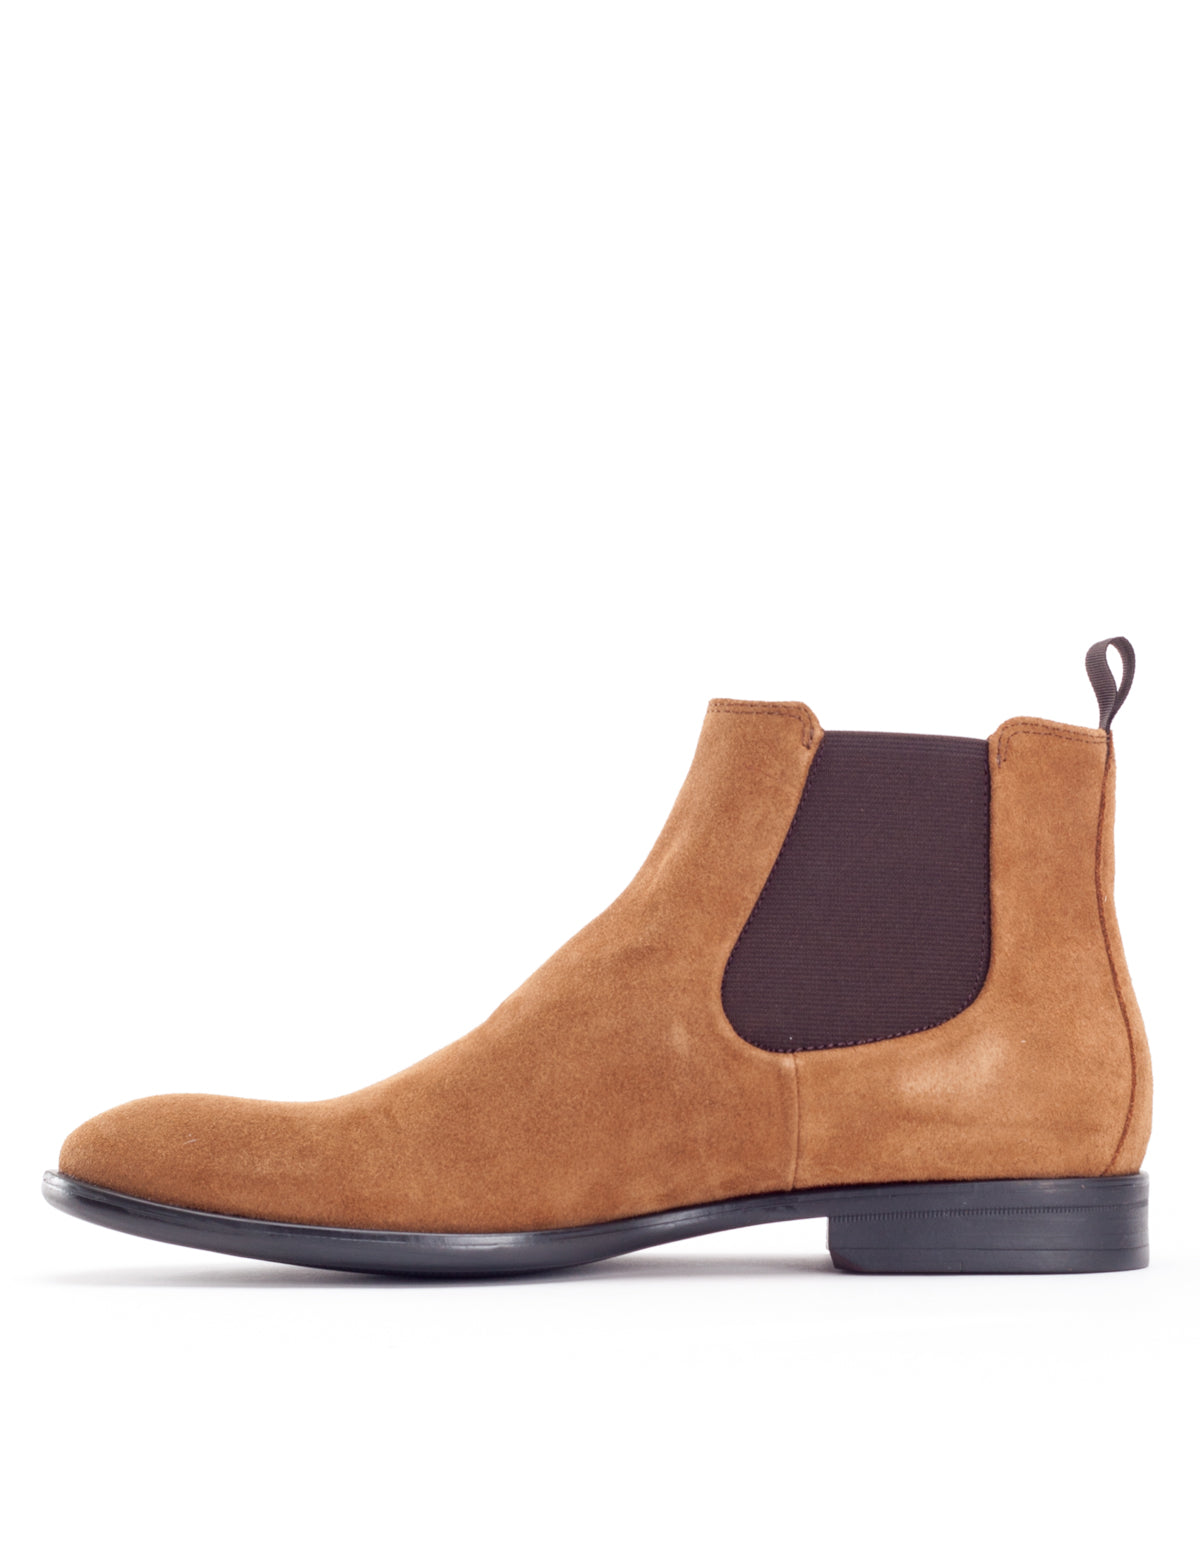 Vagabond Harvey Suede Chelsea Boot Cinnamon